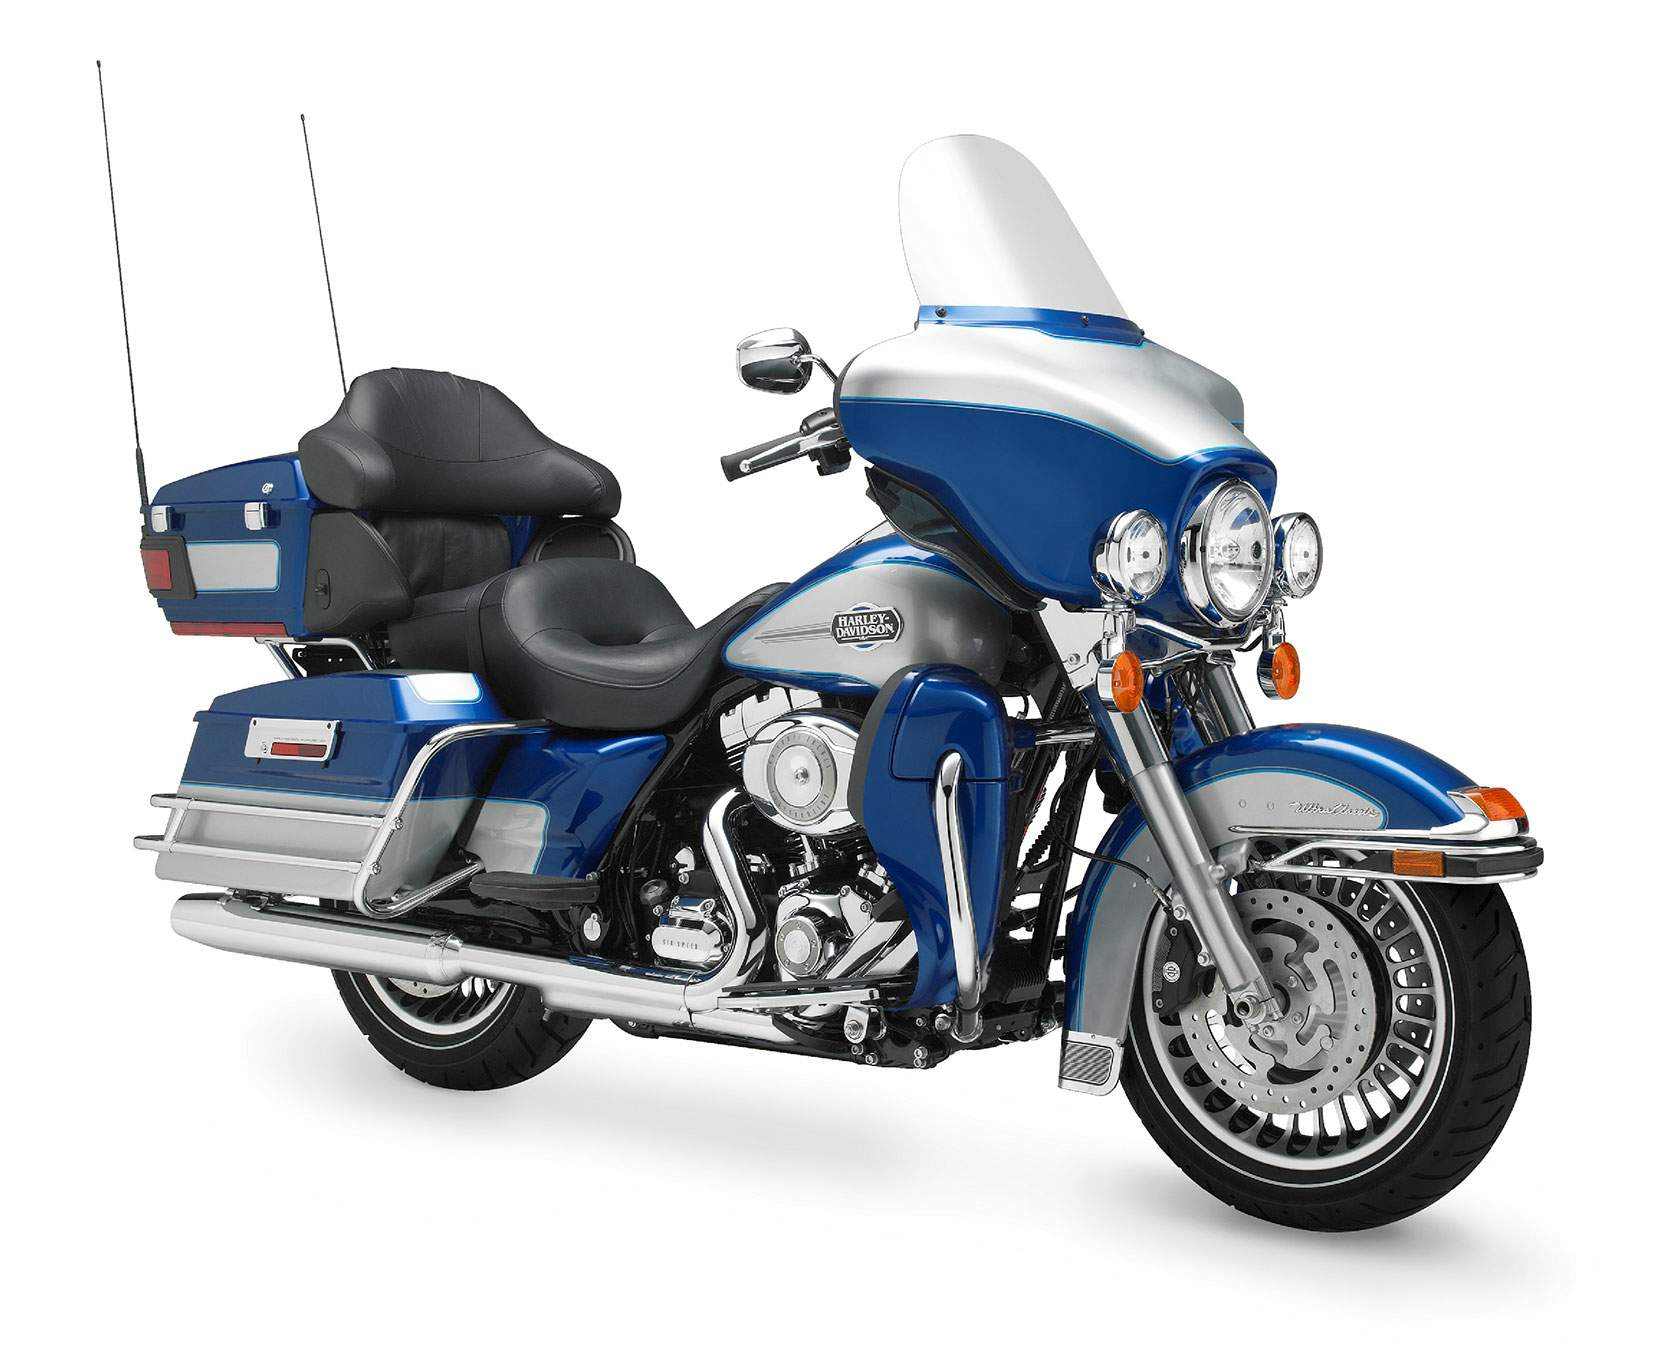 2005 electra glide classic weight loss